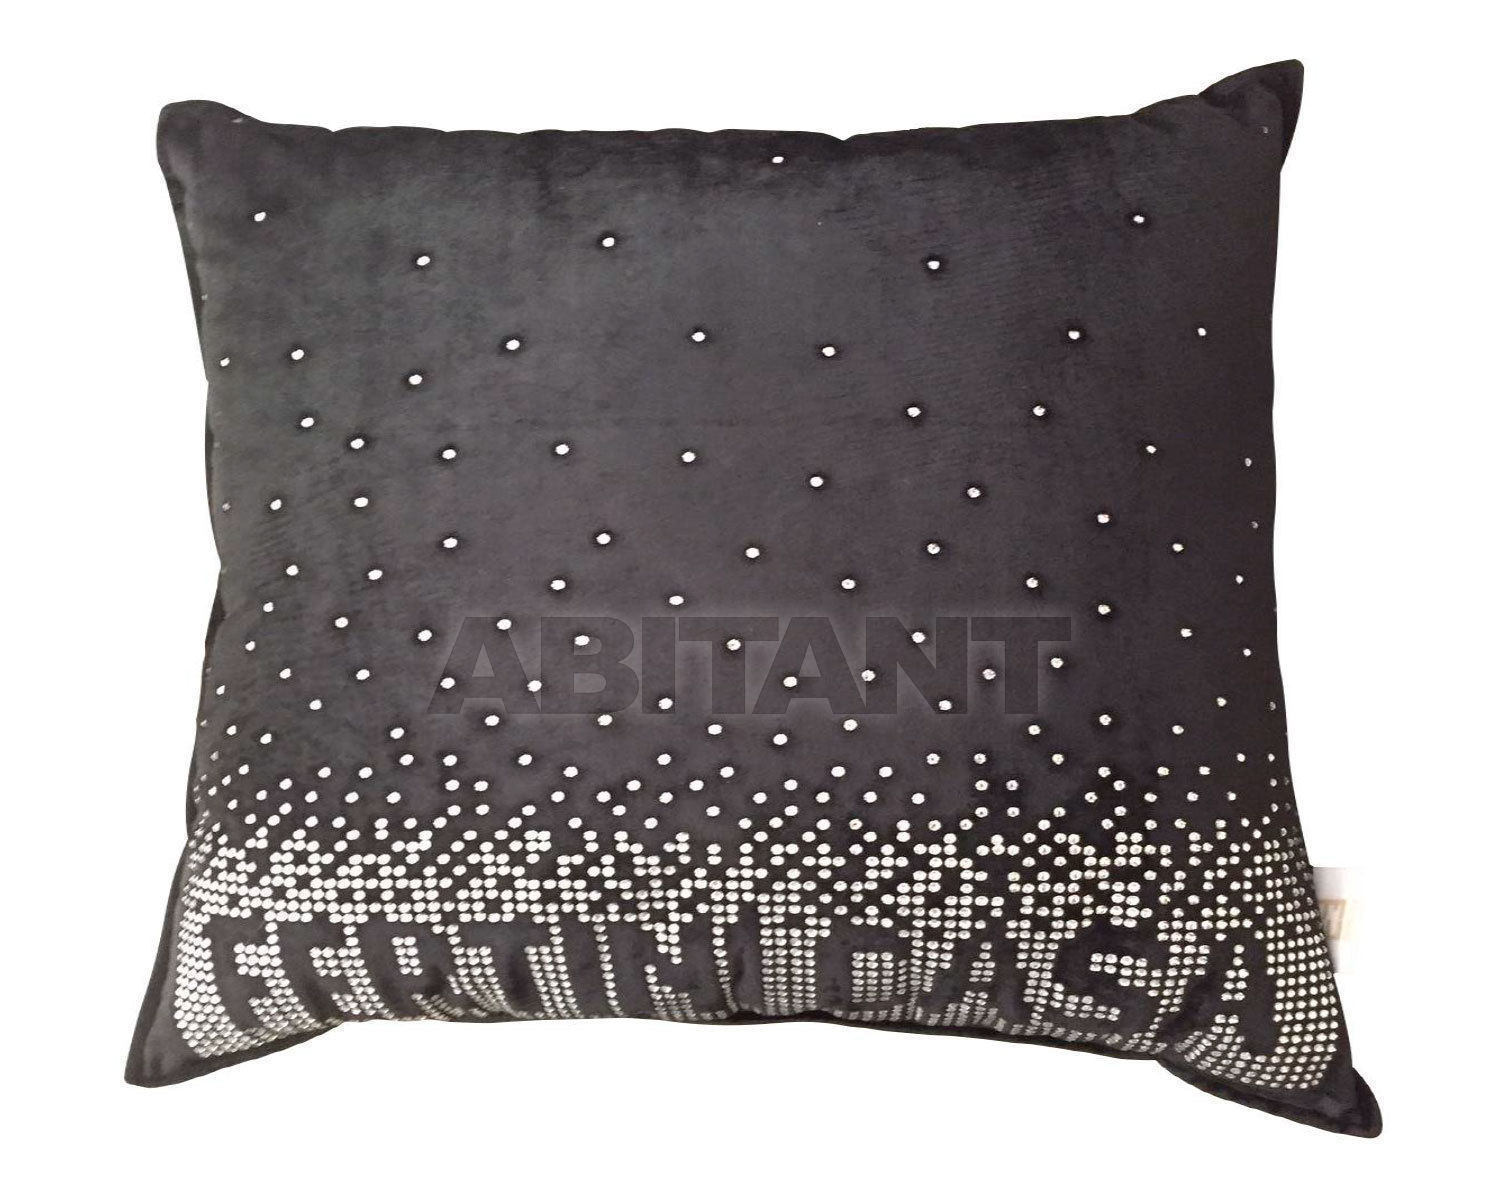 Buy Pillow Fertini Cushions AL MAHARA